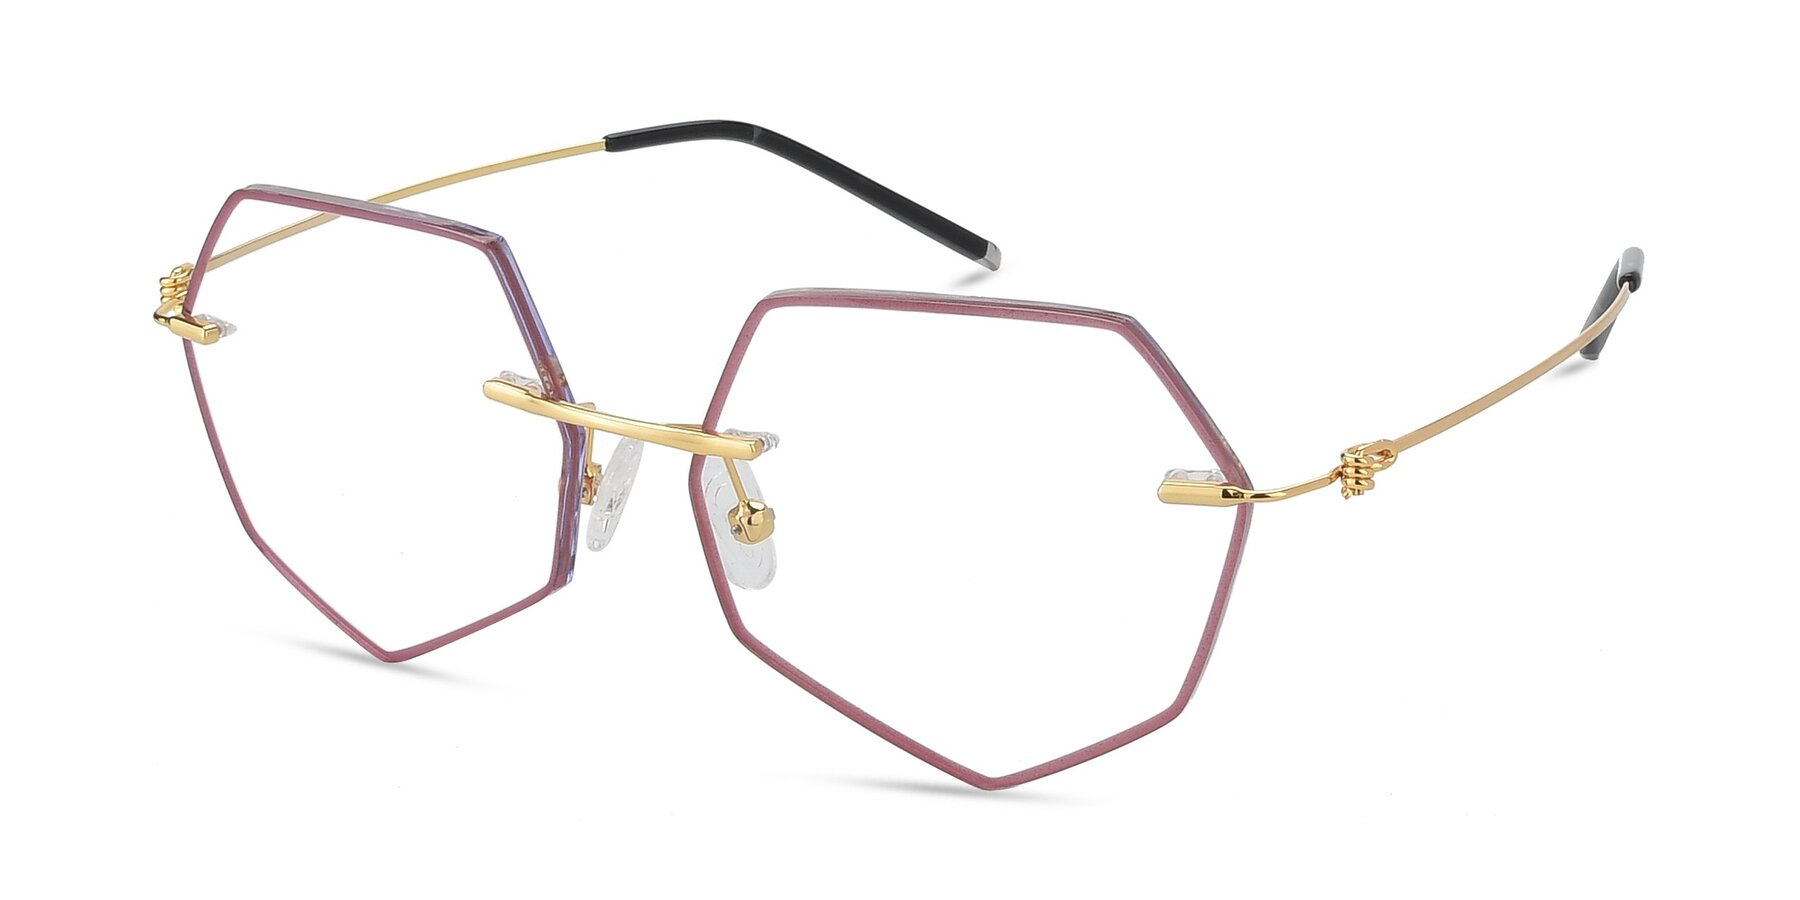 Angle of Y7003 in Wine-Gold with Clear Blue Light Blocking Lenses